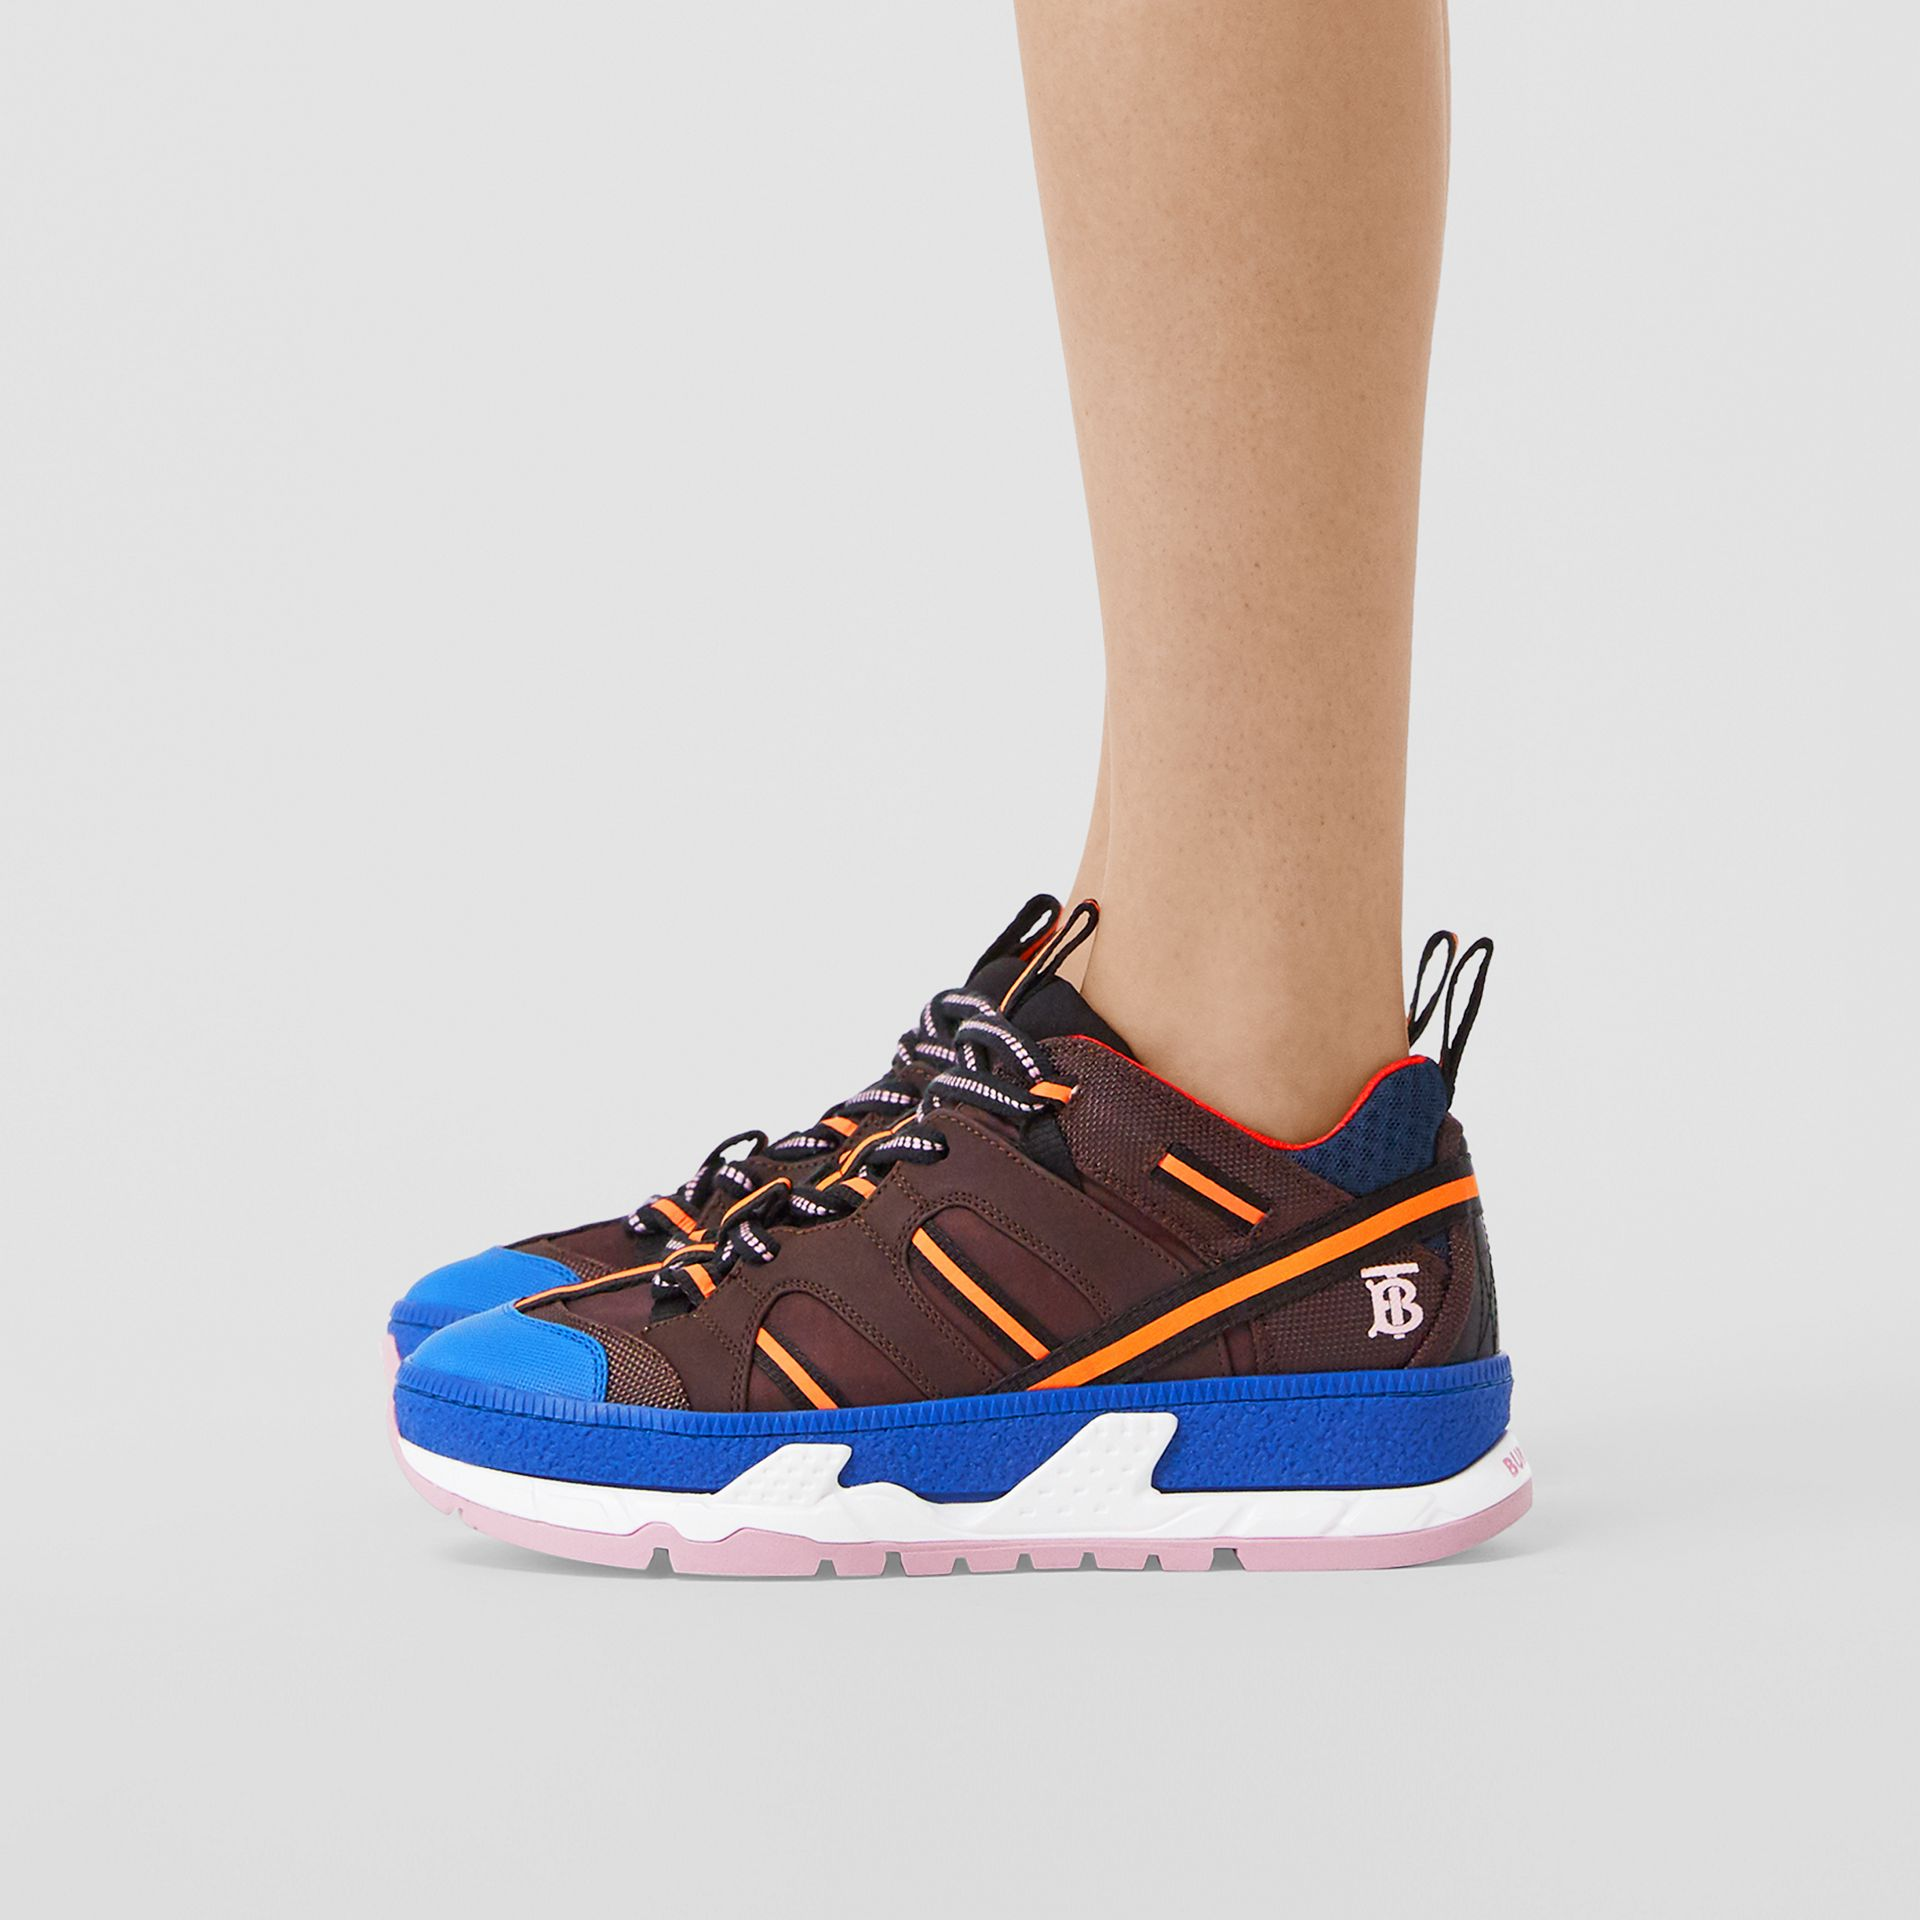 Nylon and Mesh Union Sneakers in Coffee/blue - Women | Burberry - gallery image 2